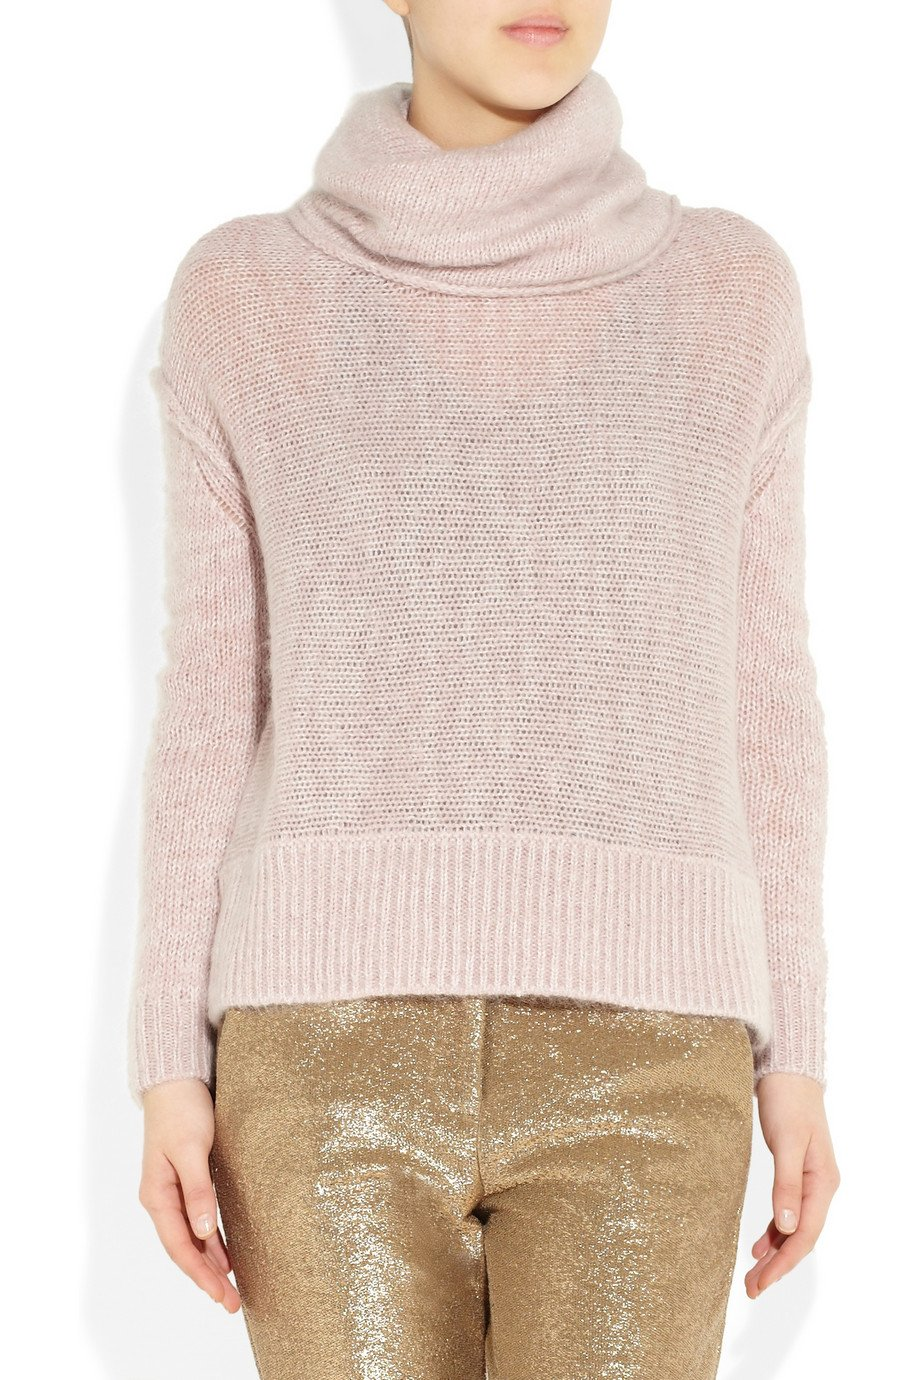 Duffy Knitted Turtleneck Sweater in Pink | Lyst